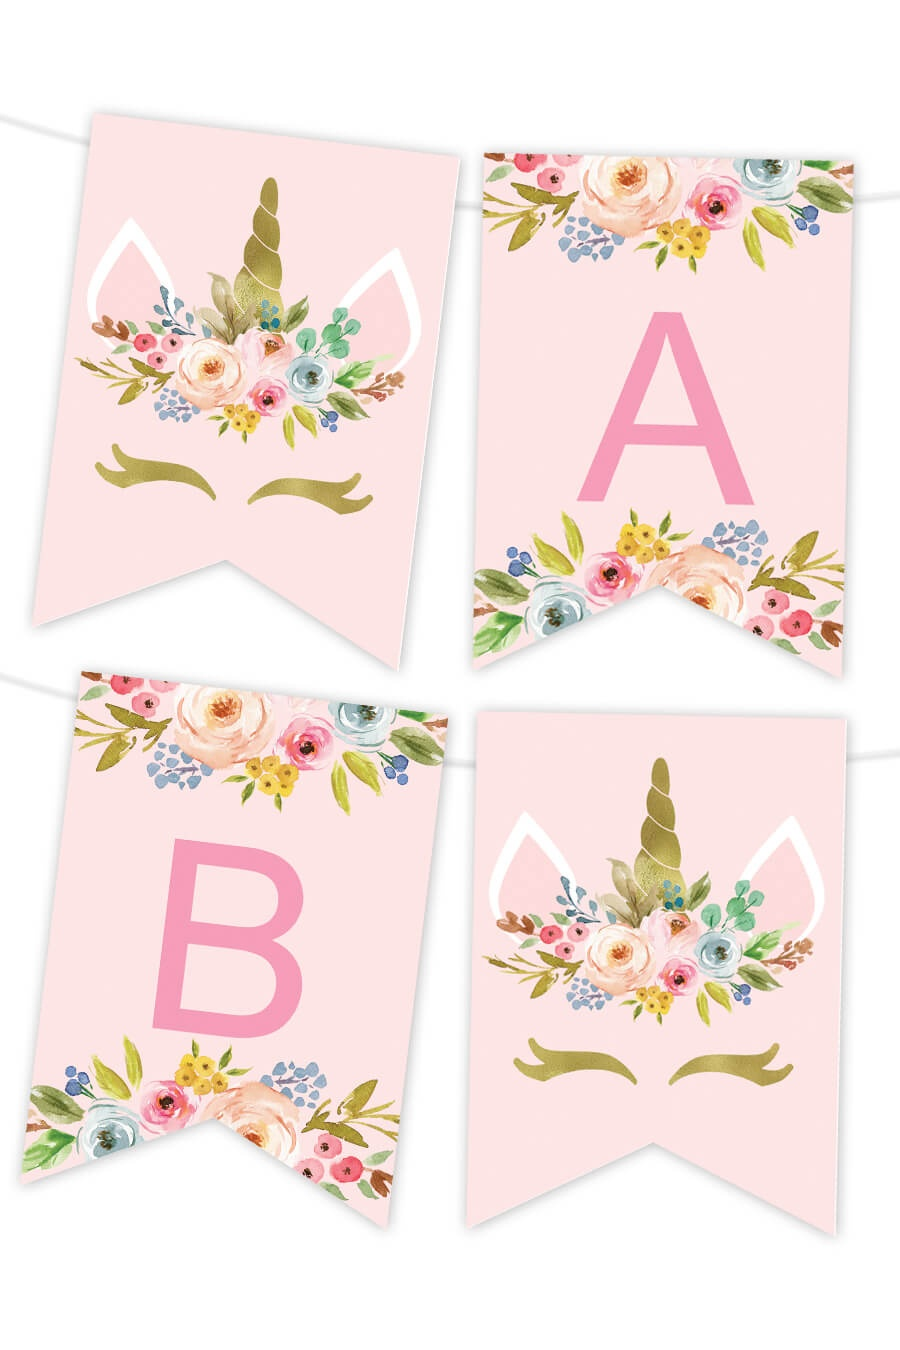 Printable Banners - Make Your Own Banners With Our Printable Templates - Free Printable Banners